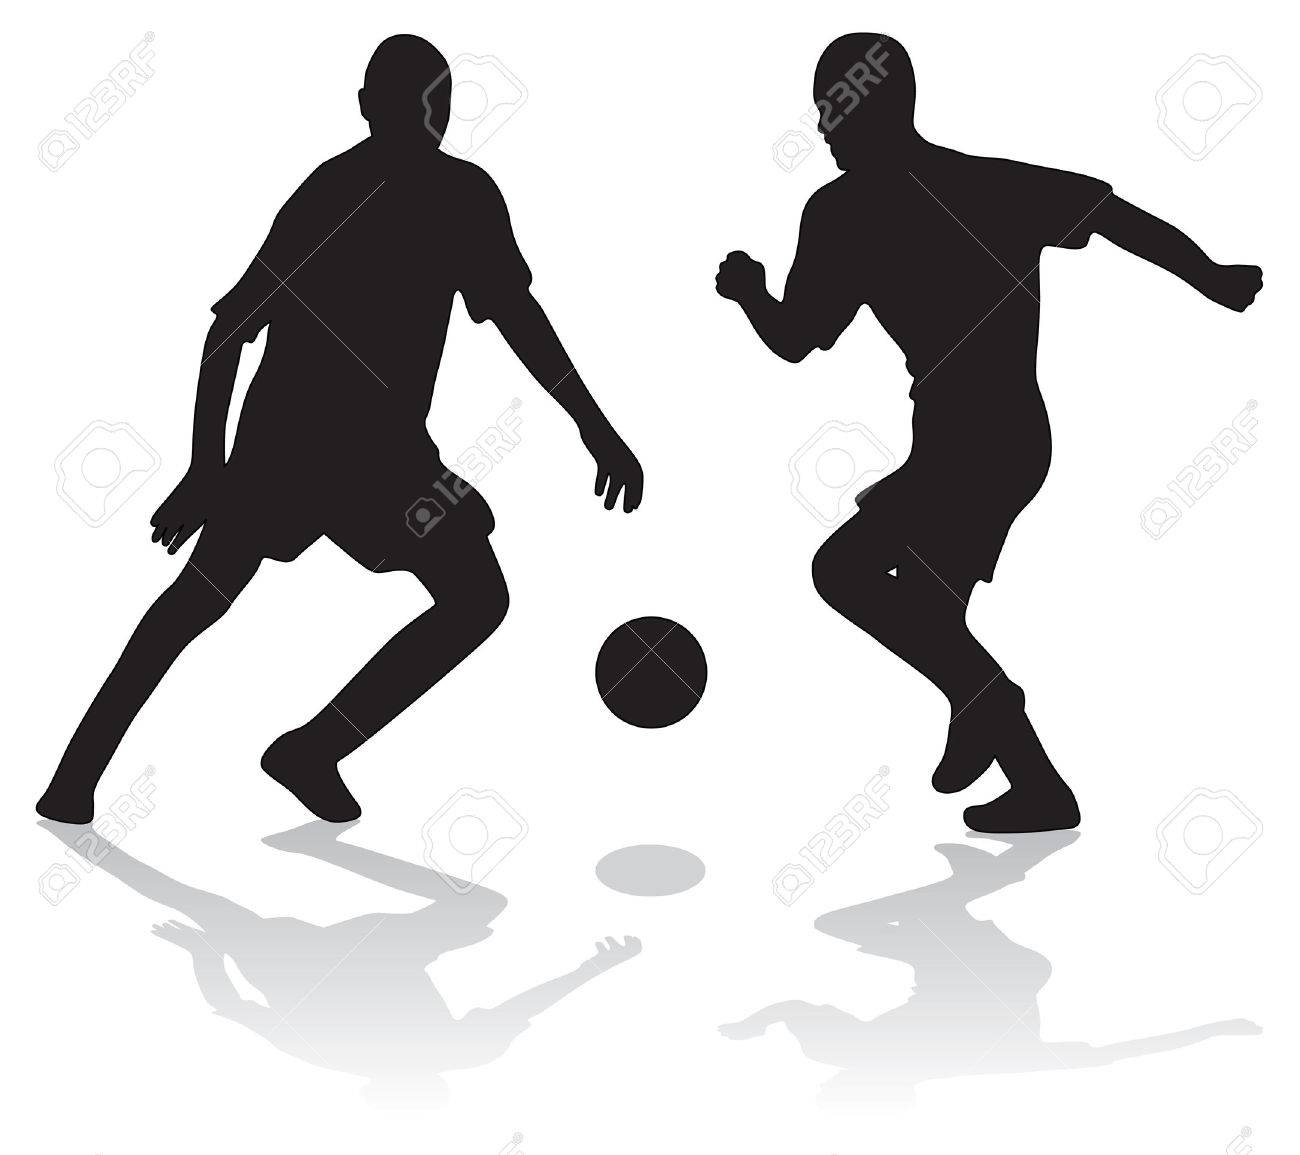 1300x1155 Two Silhouettes Of Soccer Players With Ball Stock Photo, Picture